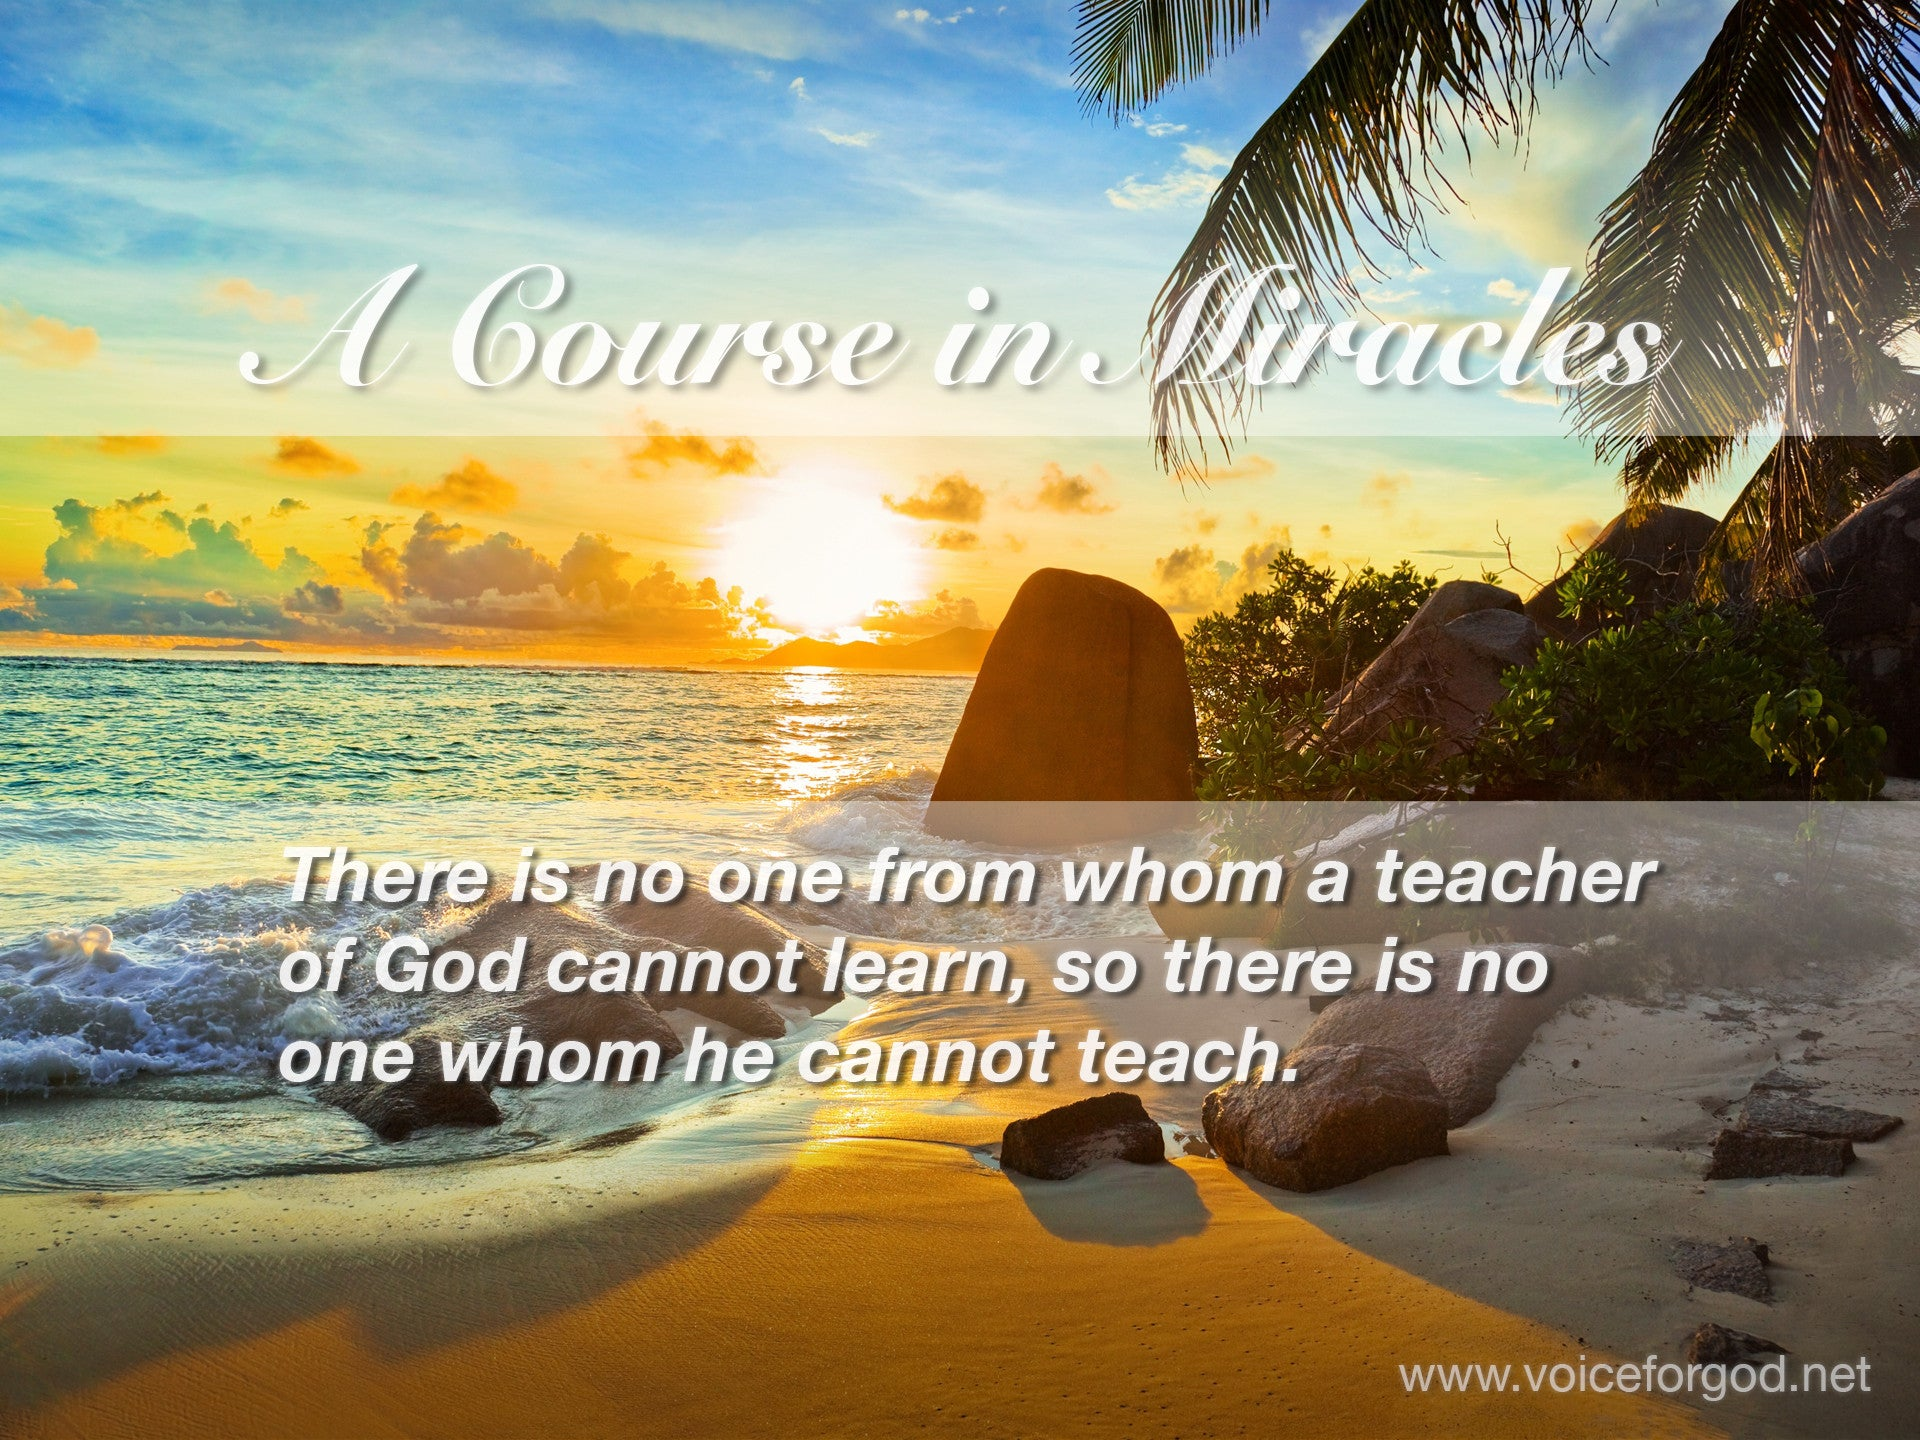 ACIM Quote 0701 A Course in Miracles Quotes